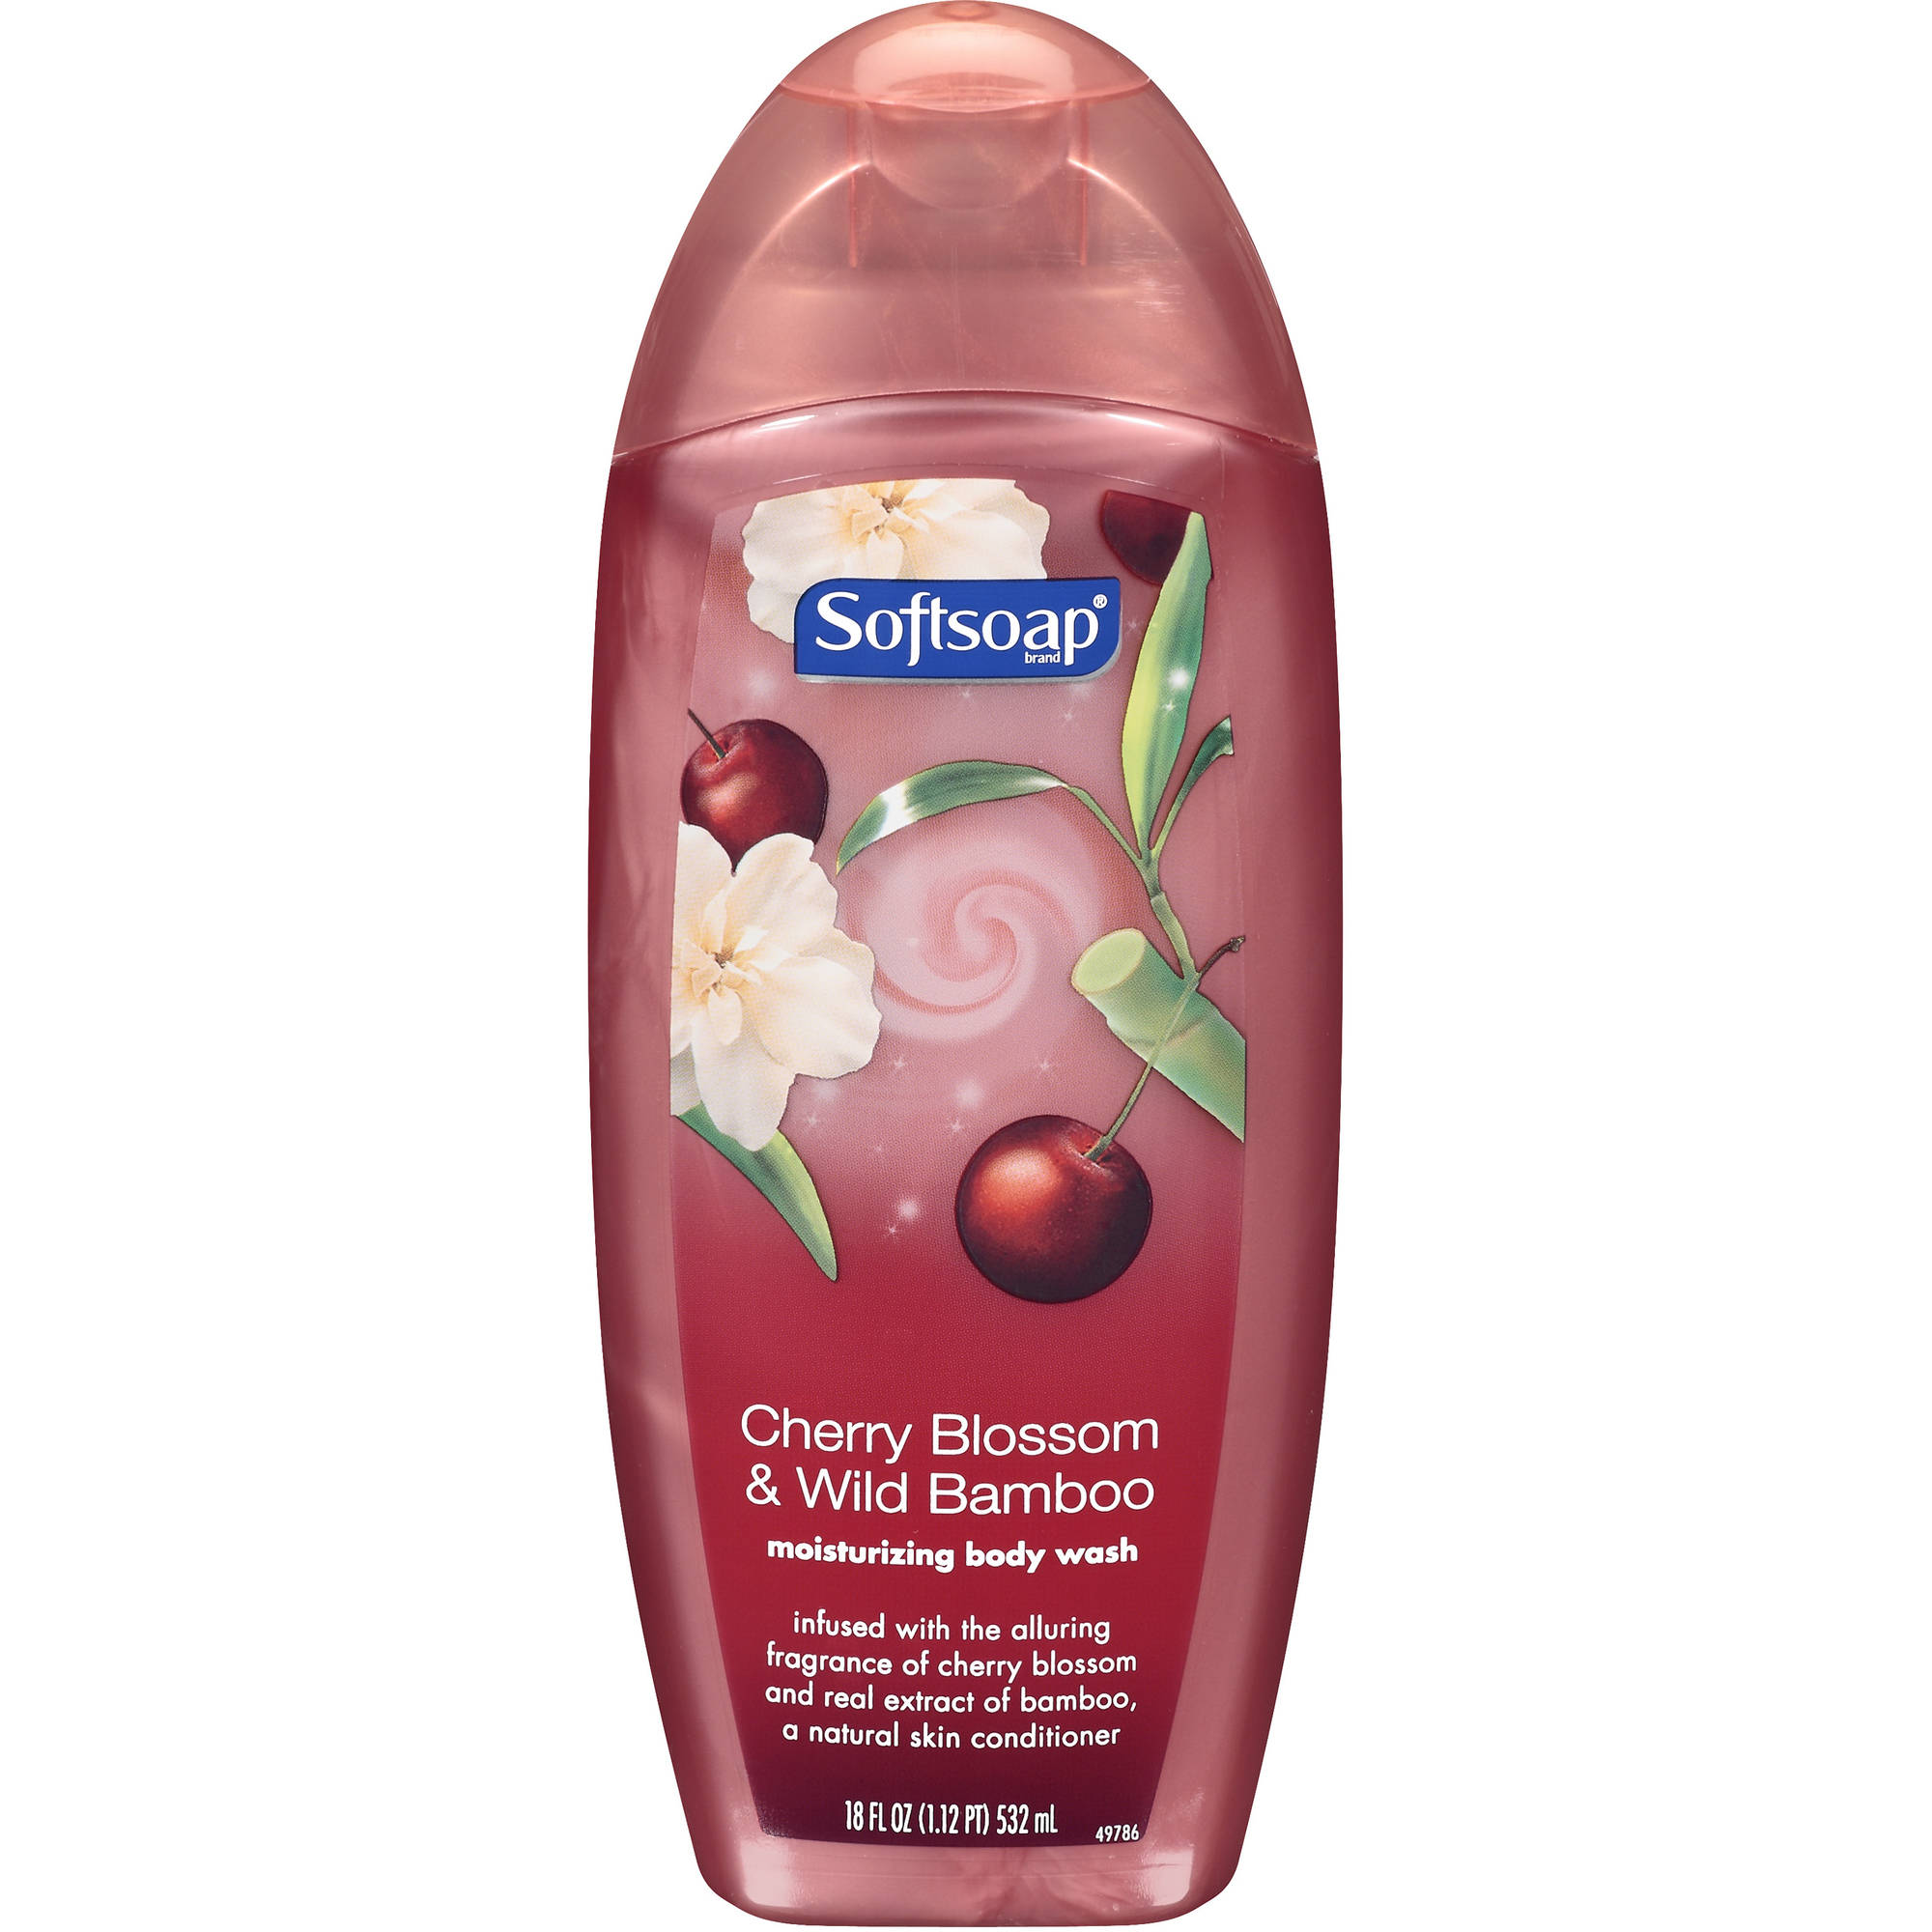 Softsoap Cherry Blossom & Wild Bamboo Moisturizing Body Wash, 18 oz